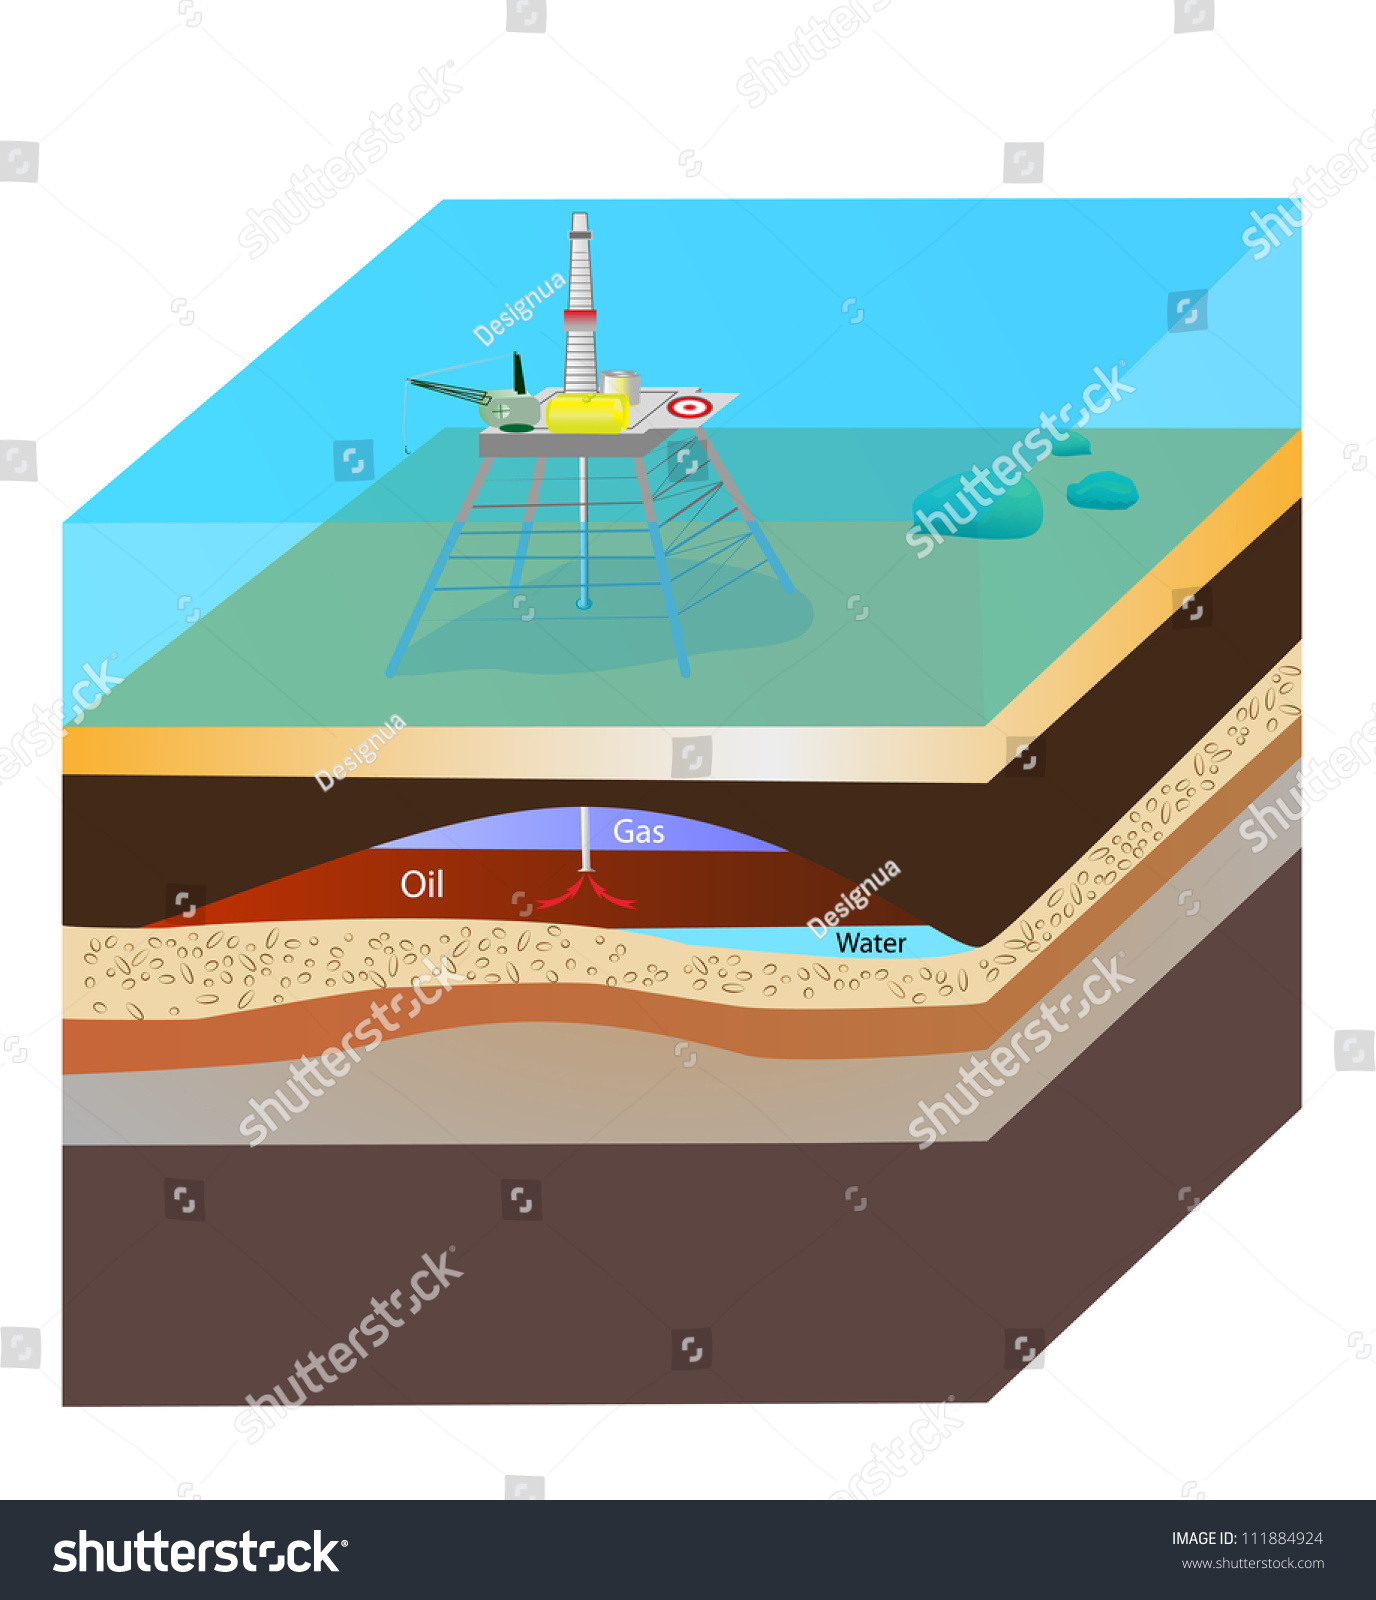 Oil Extraction Oil Production Platform Scheme Stock Vector Royalty Free 111884924